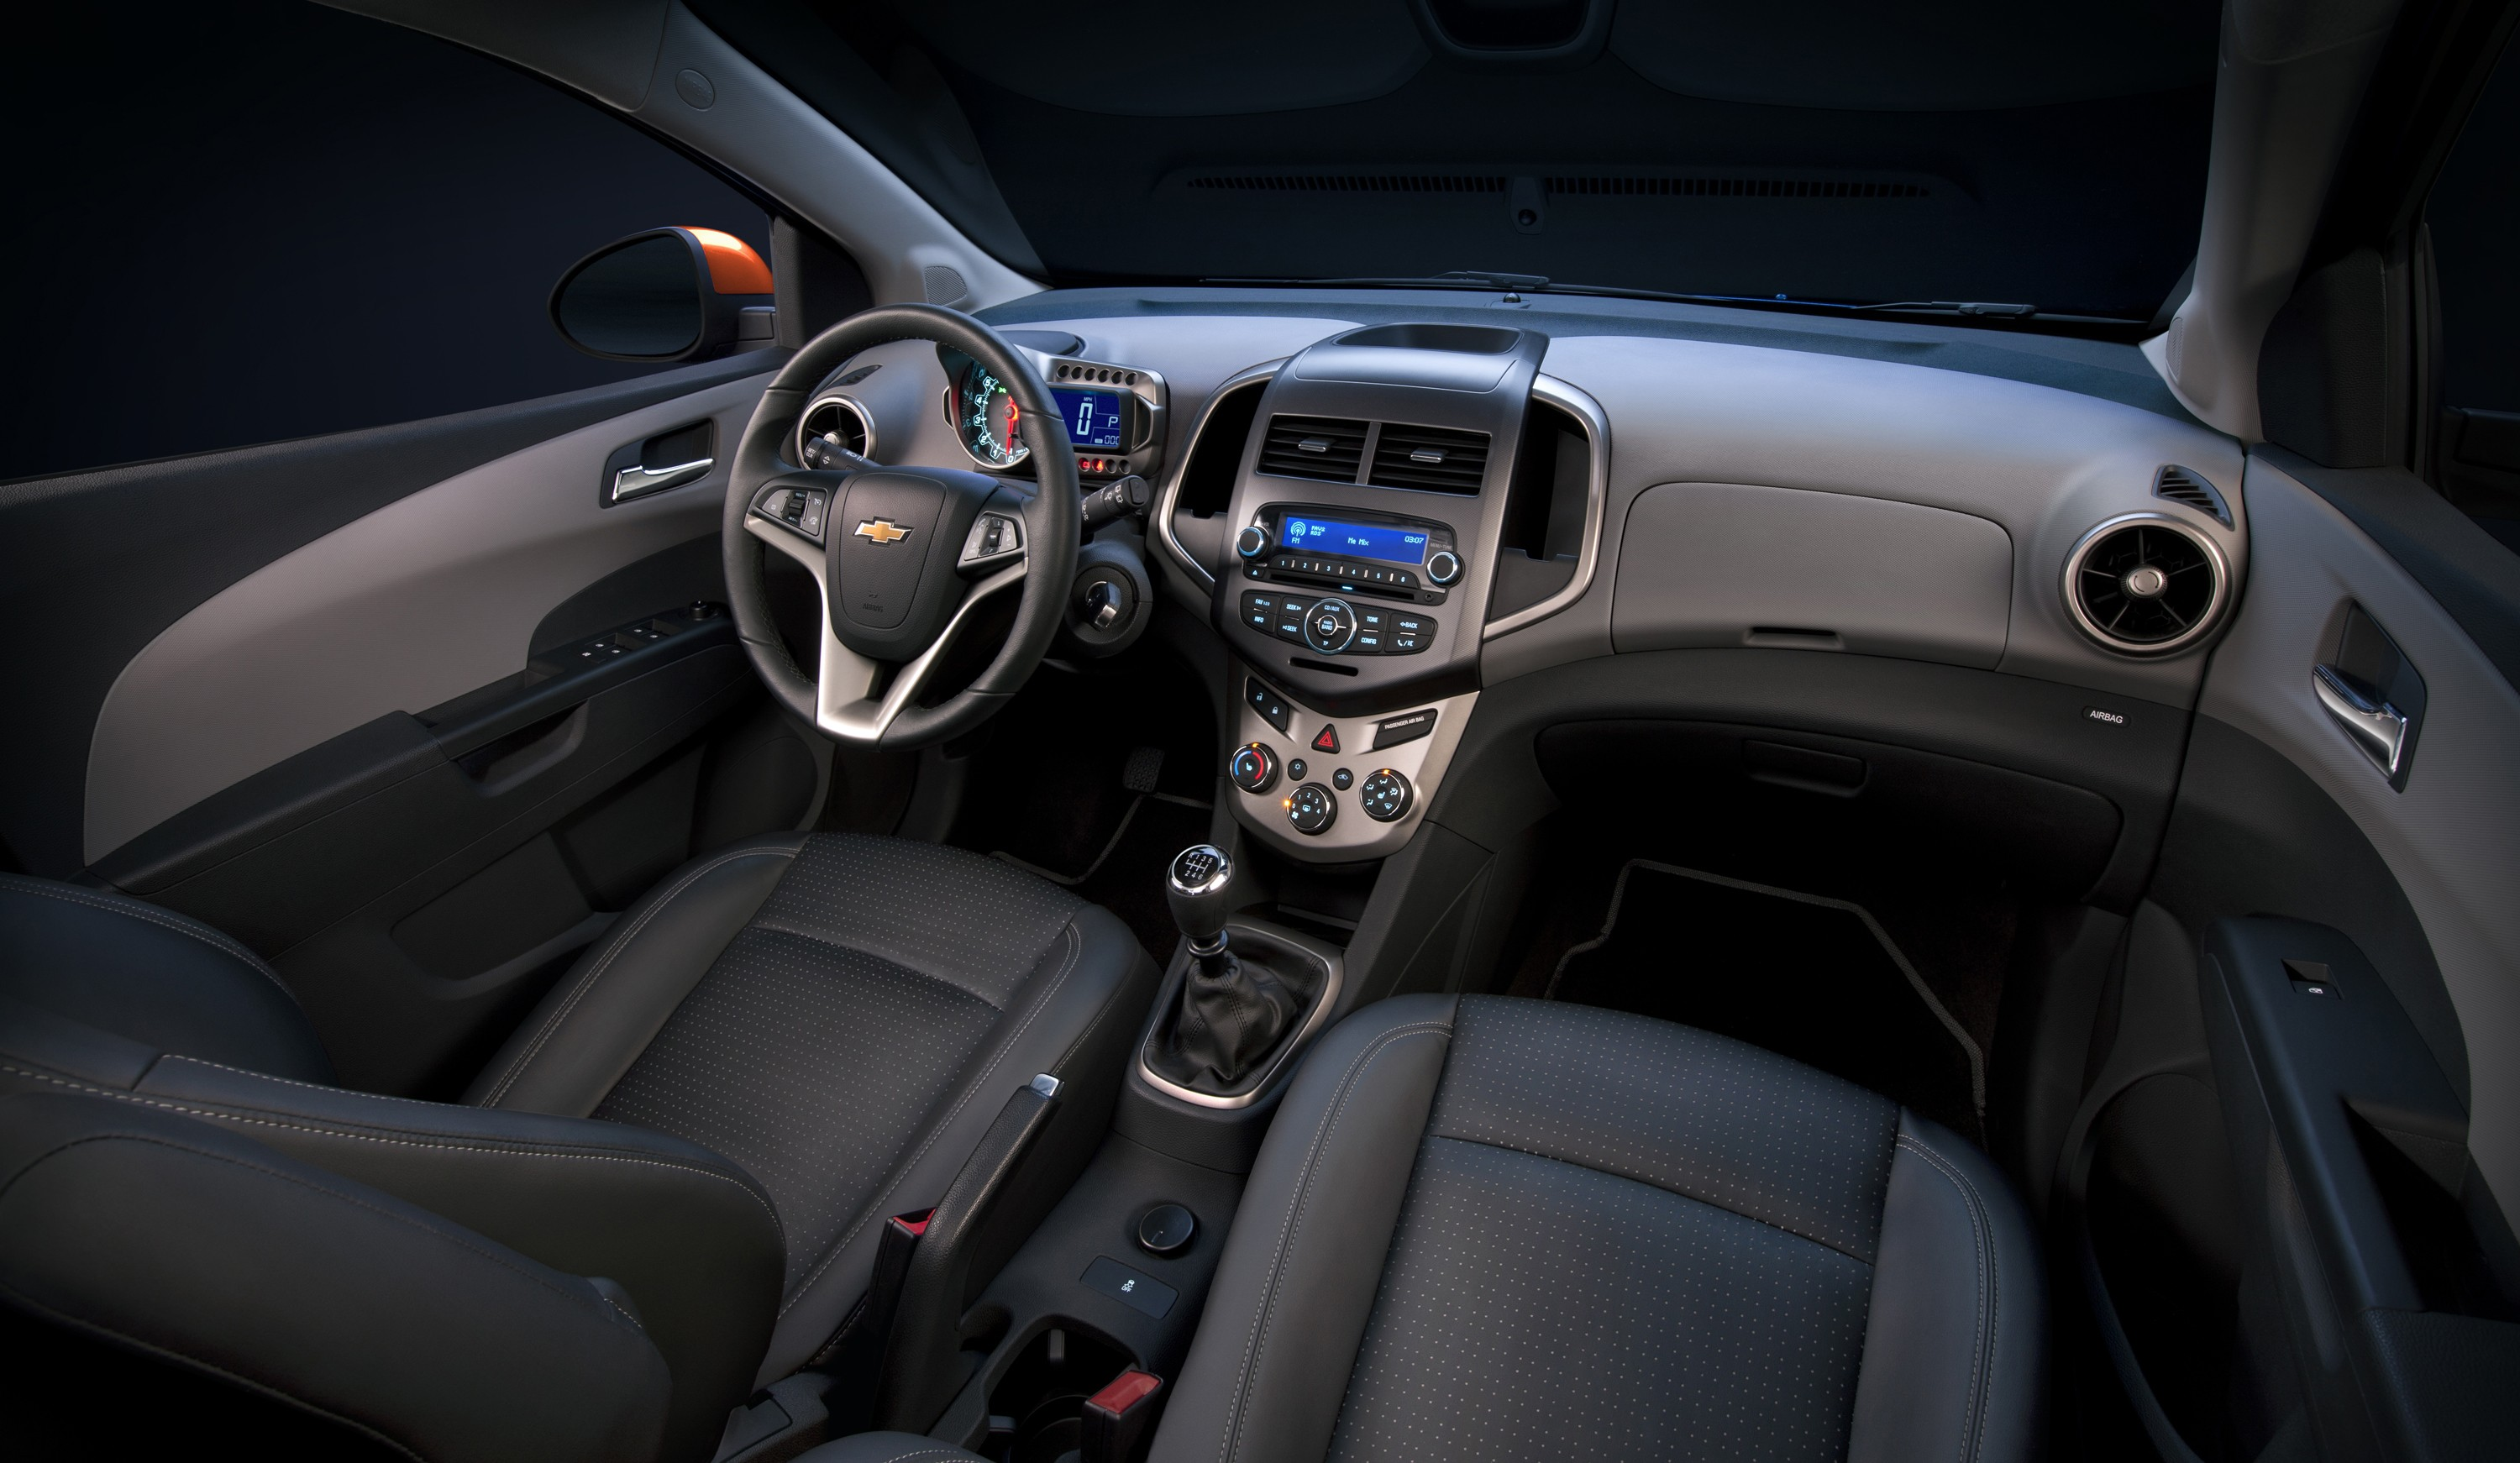 Chevrolet Aveo 2016 >> CHEVROLET Sonic Sedan specs & photos - 2011, 2012, 2013, 2014, 2015, 2016, 2017, 2018, 2019 ...